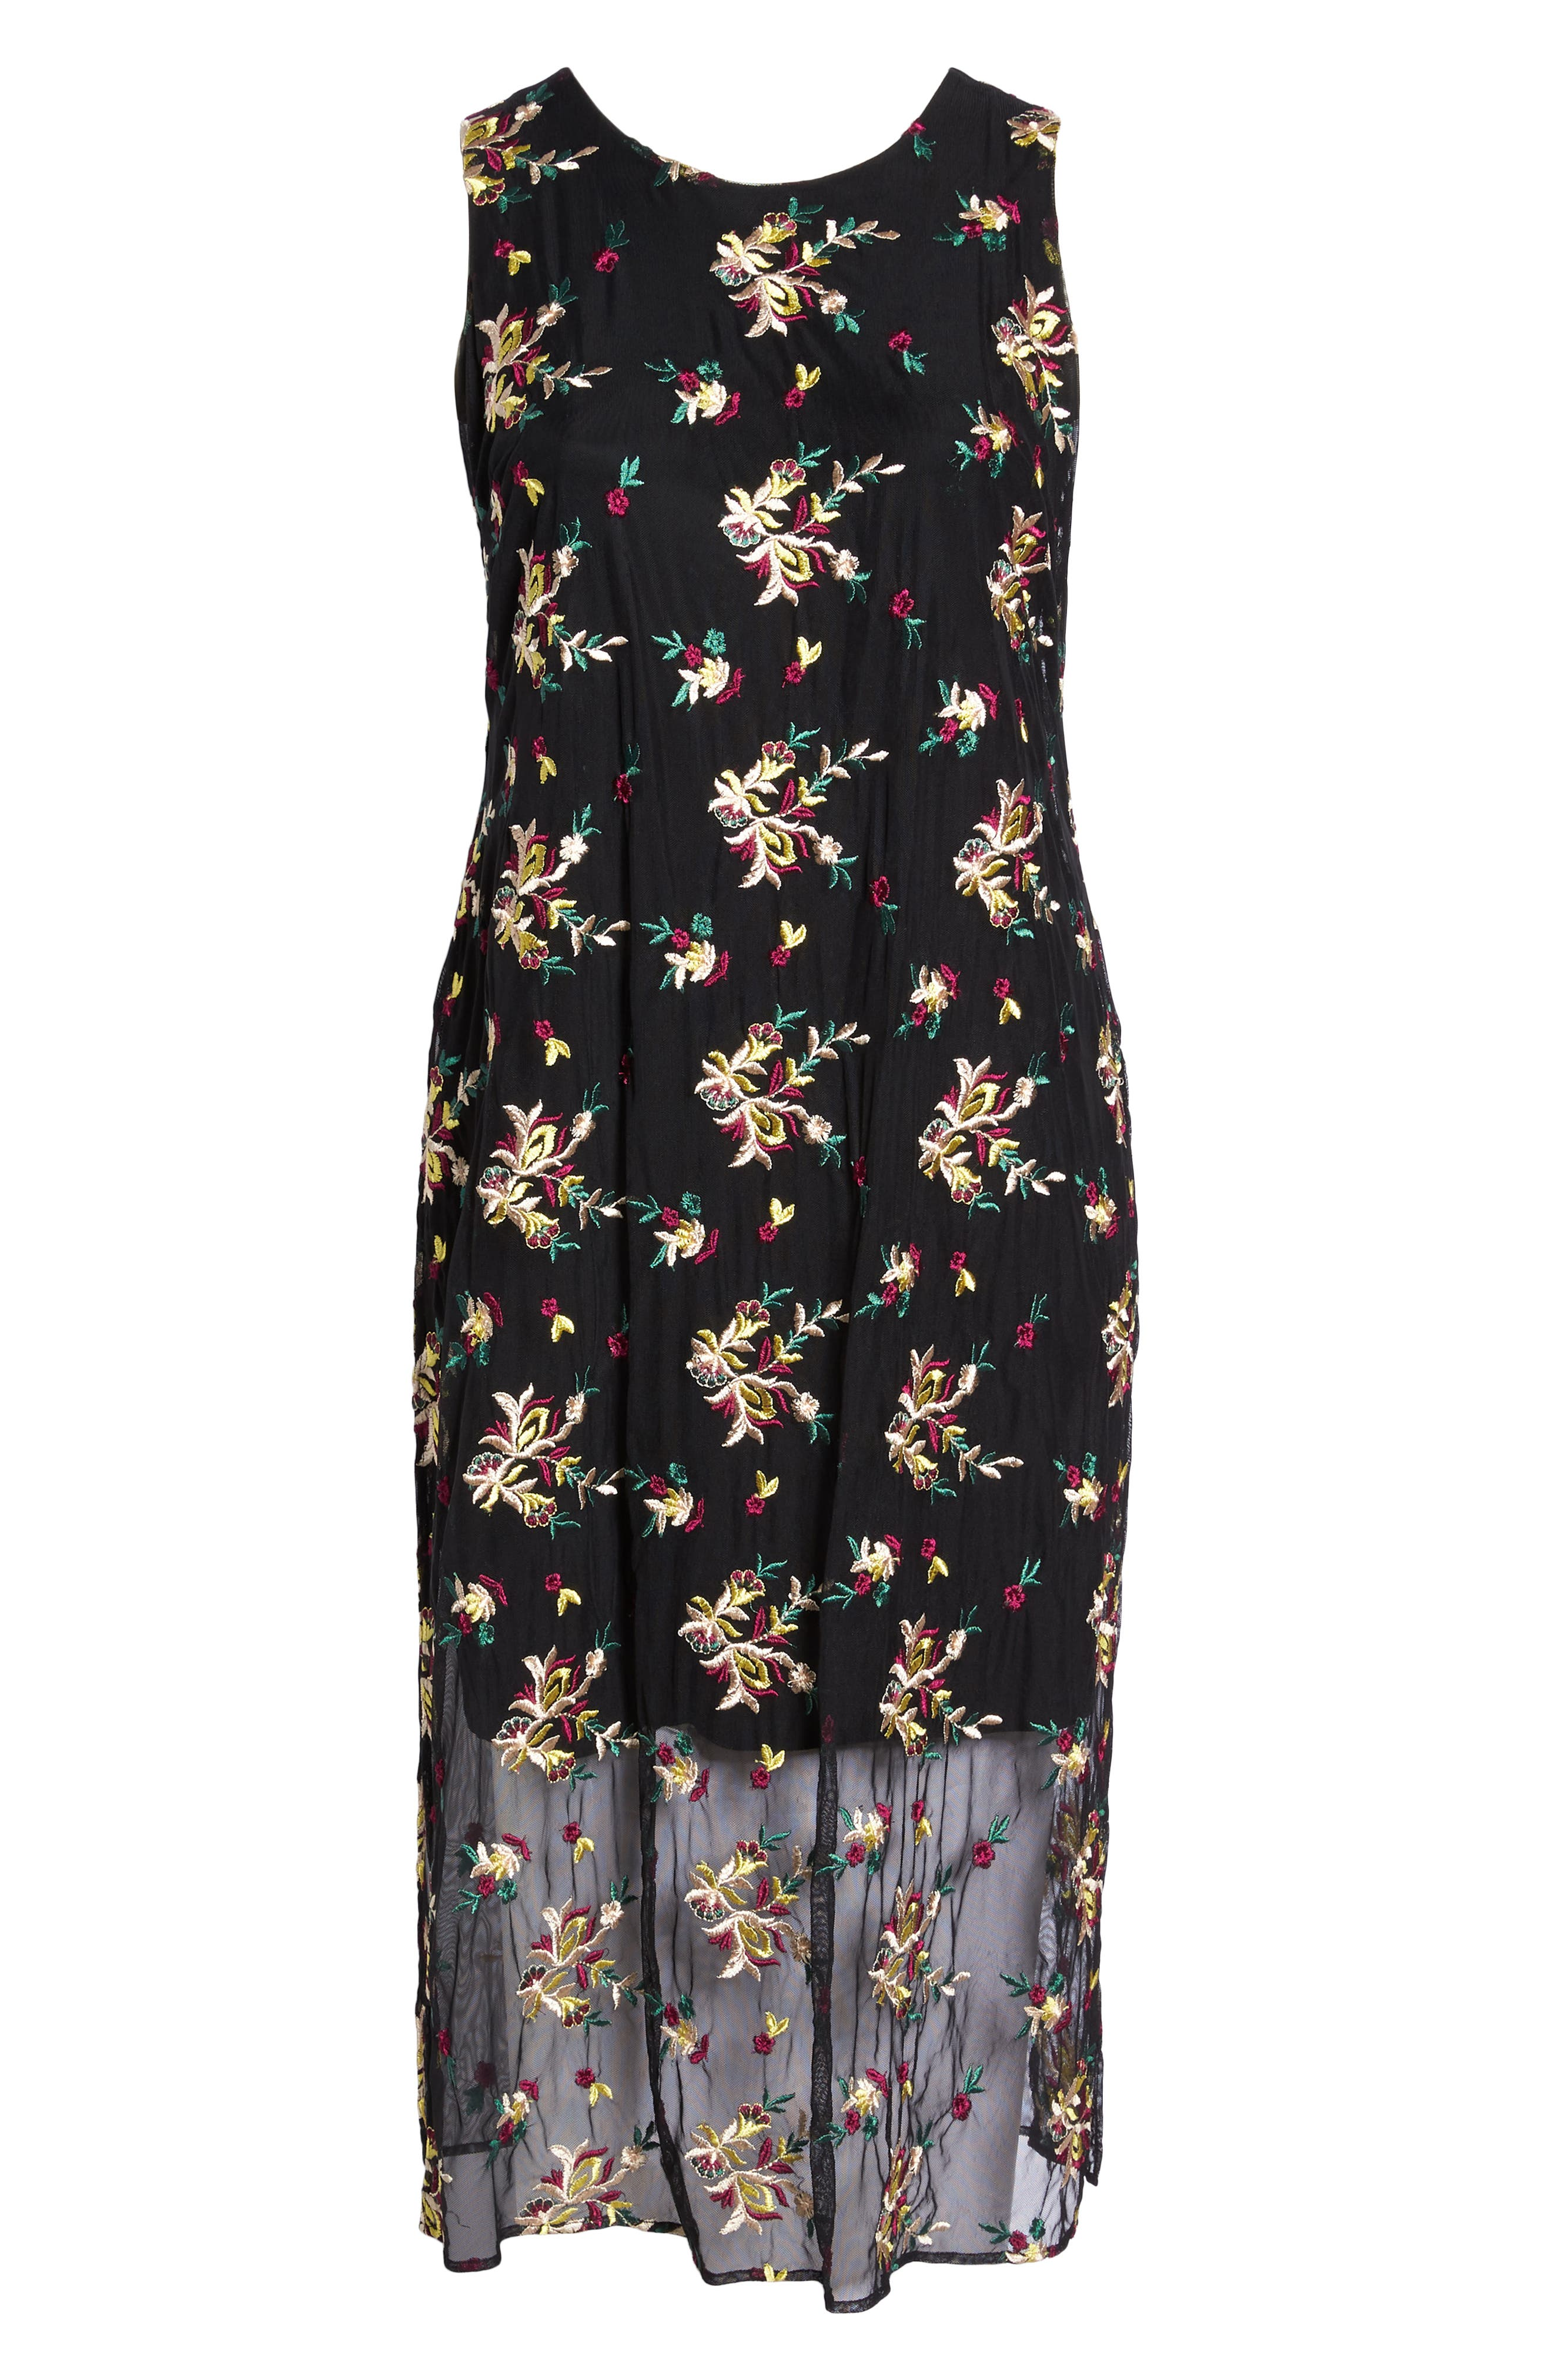 Tropical Embroidered Mesh Overlay Dress,                             Alternate thumbnail 7, color,                             004